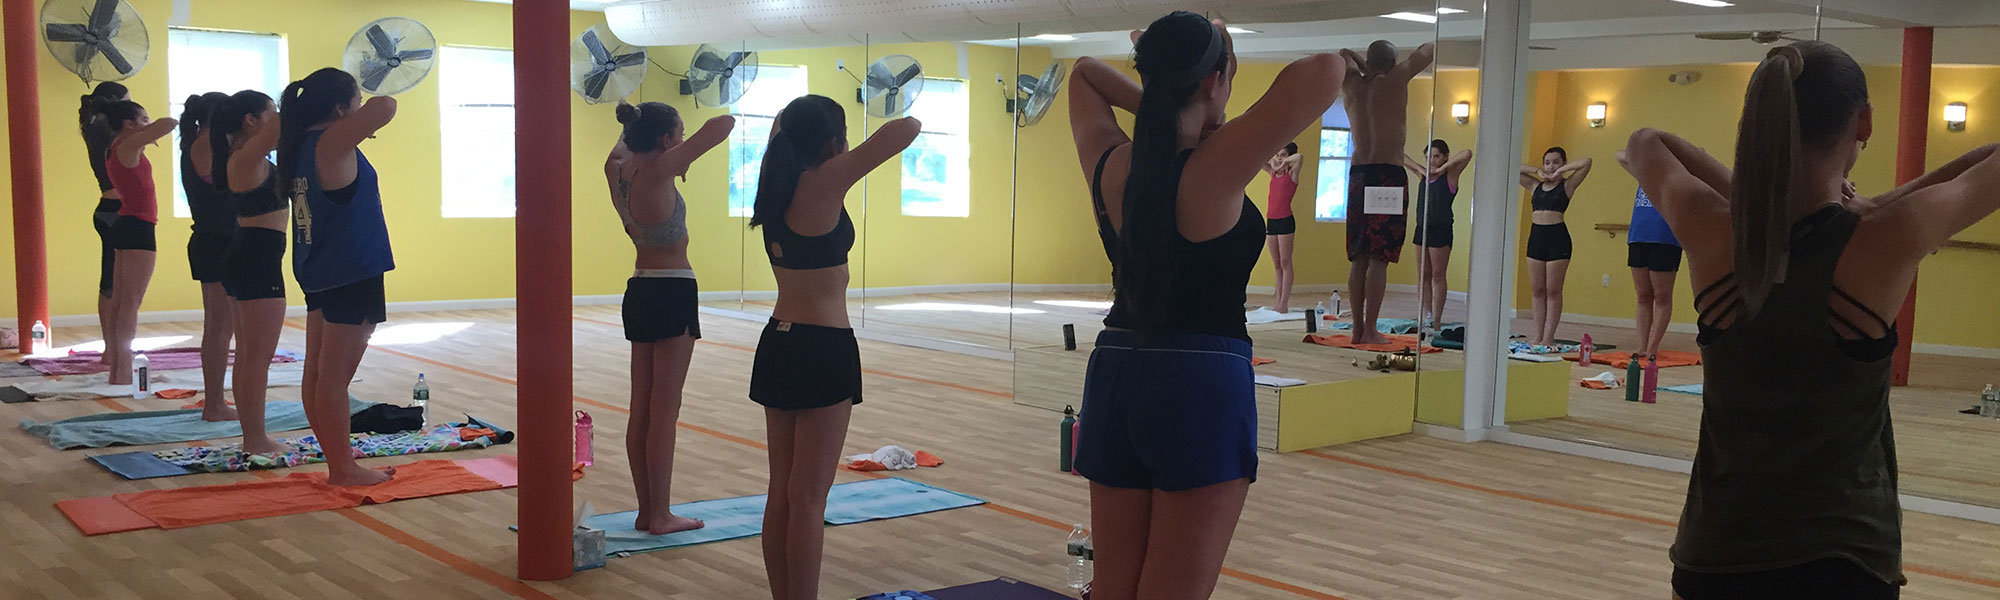 30-Day Challenge at Bikram Yoga Roslyn